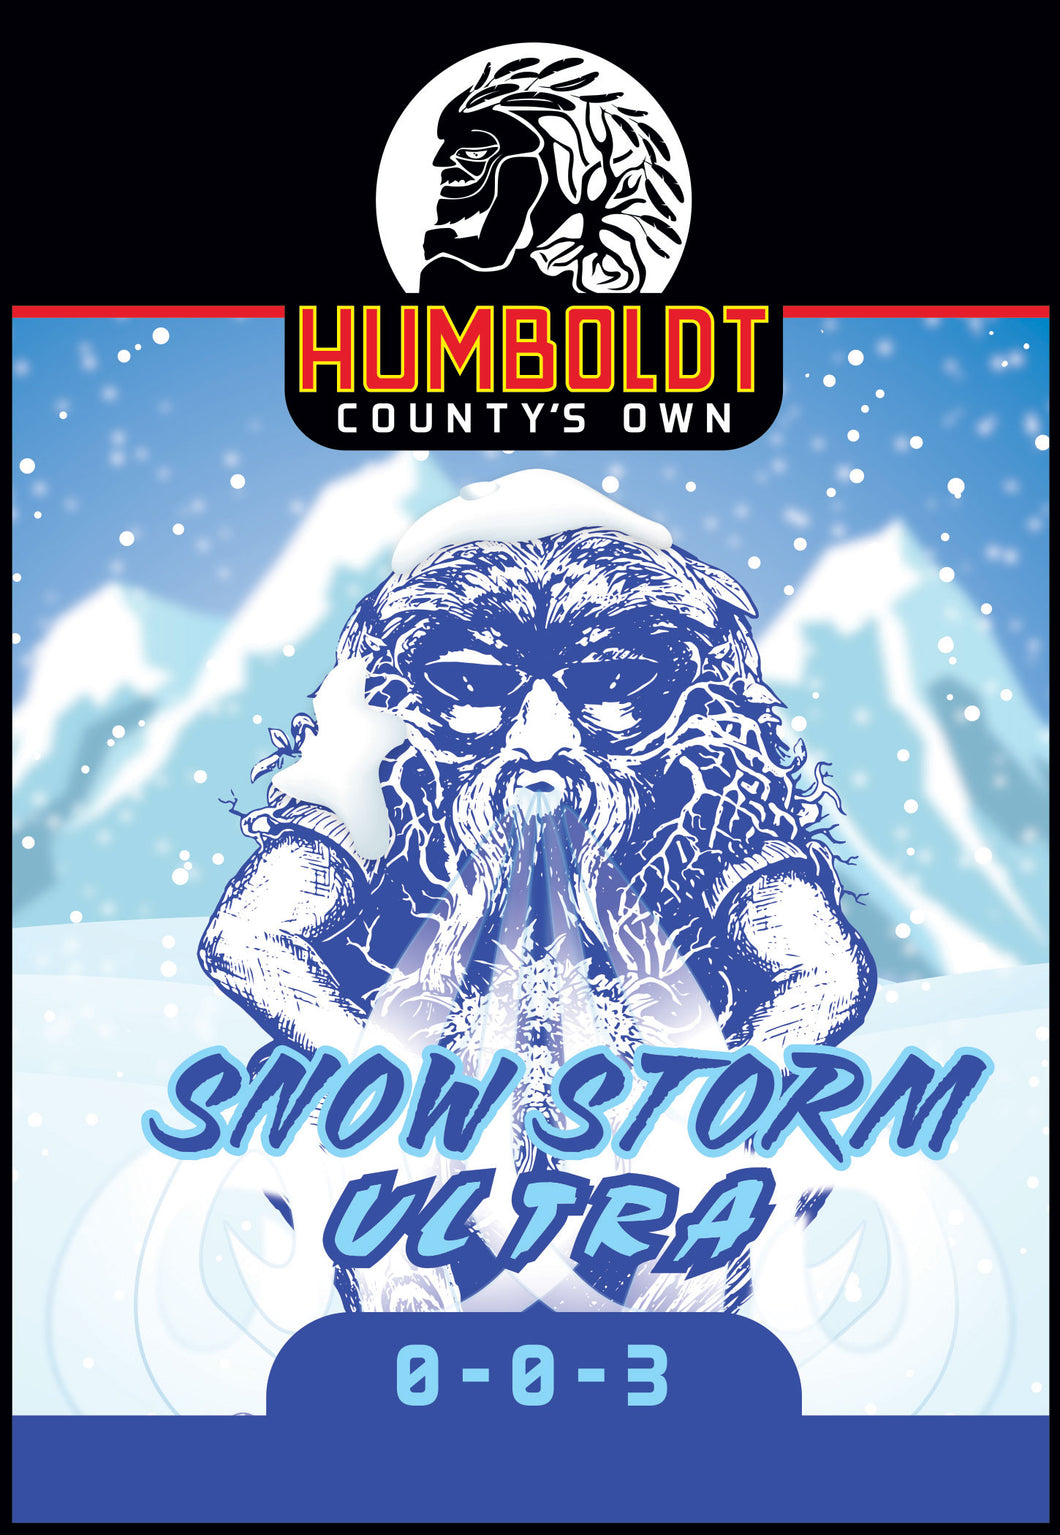 Humboldt County's Own Snow Storm Ultra